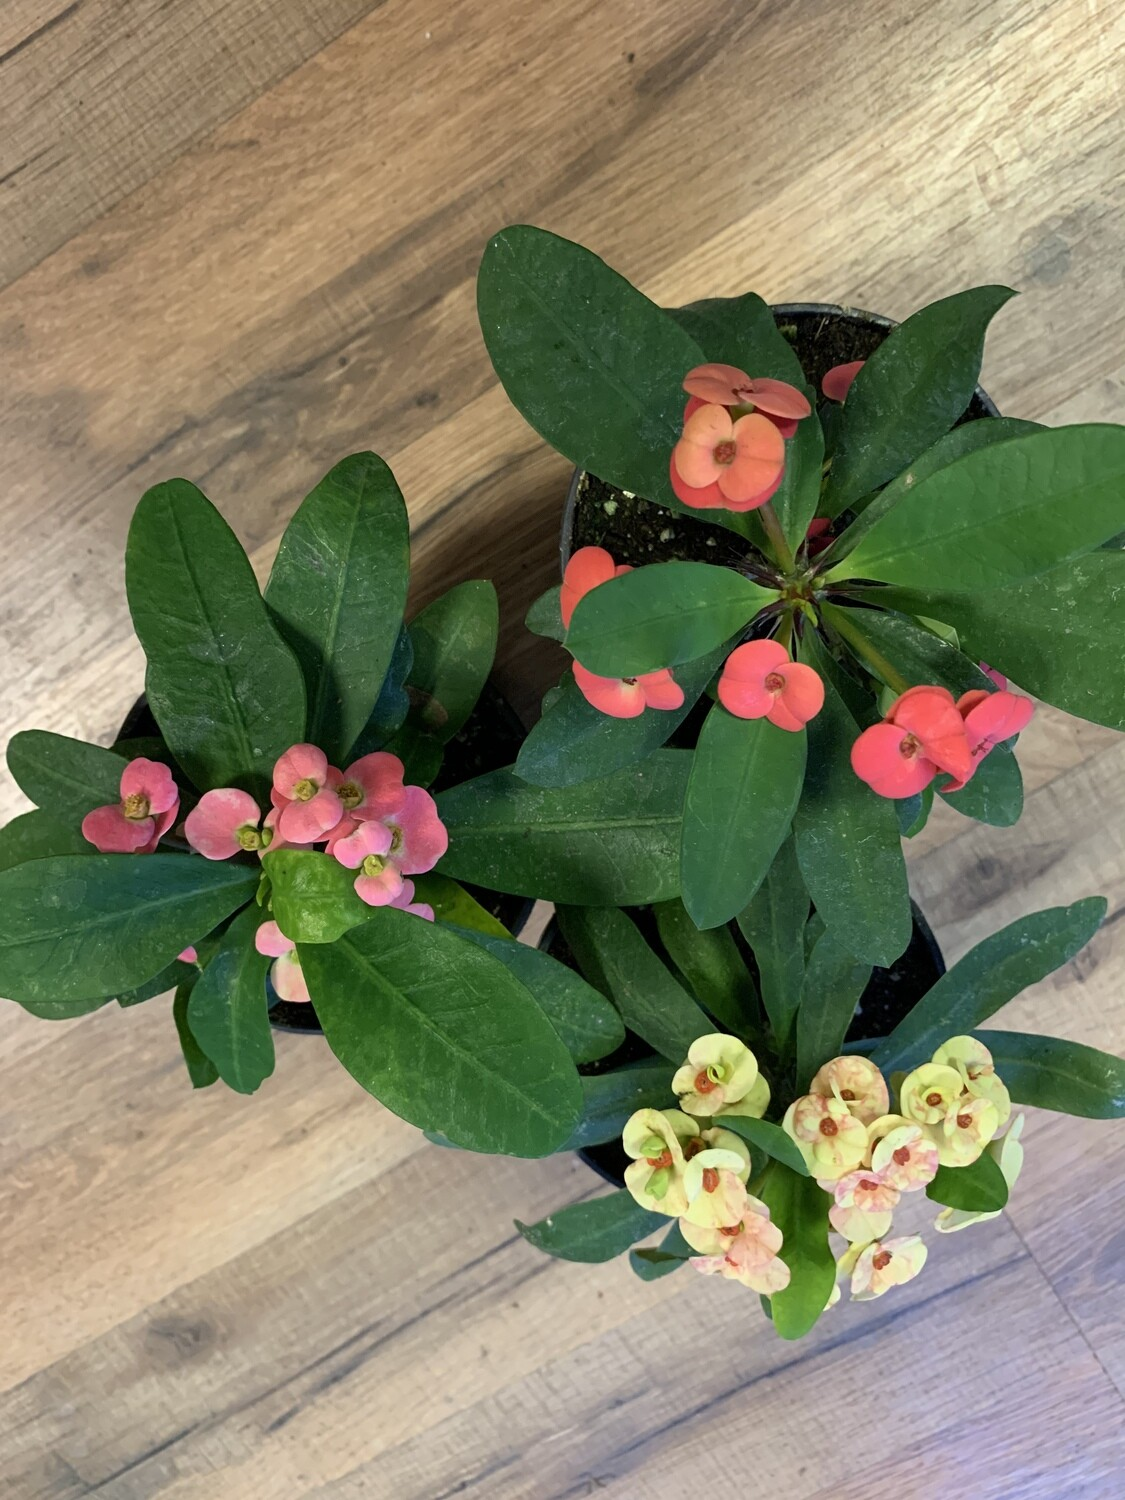 Euphorbia Crown Of Thorns